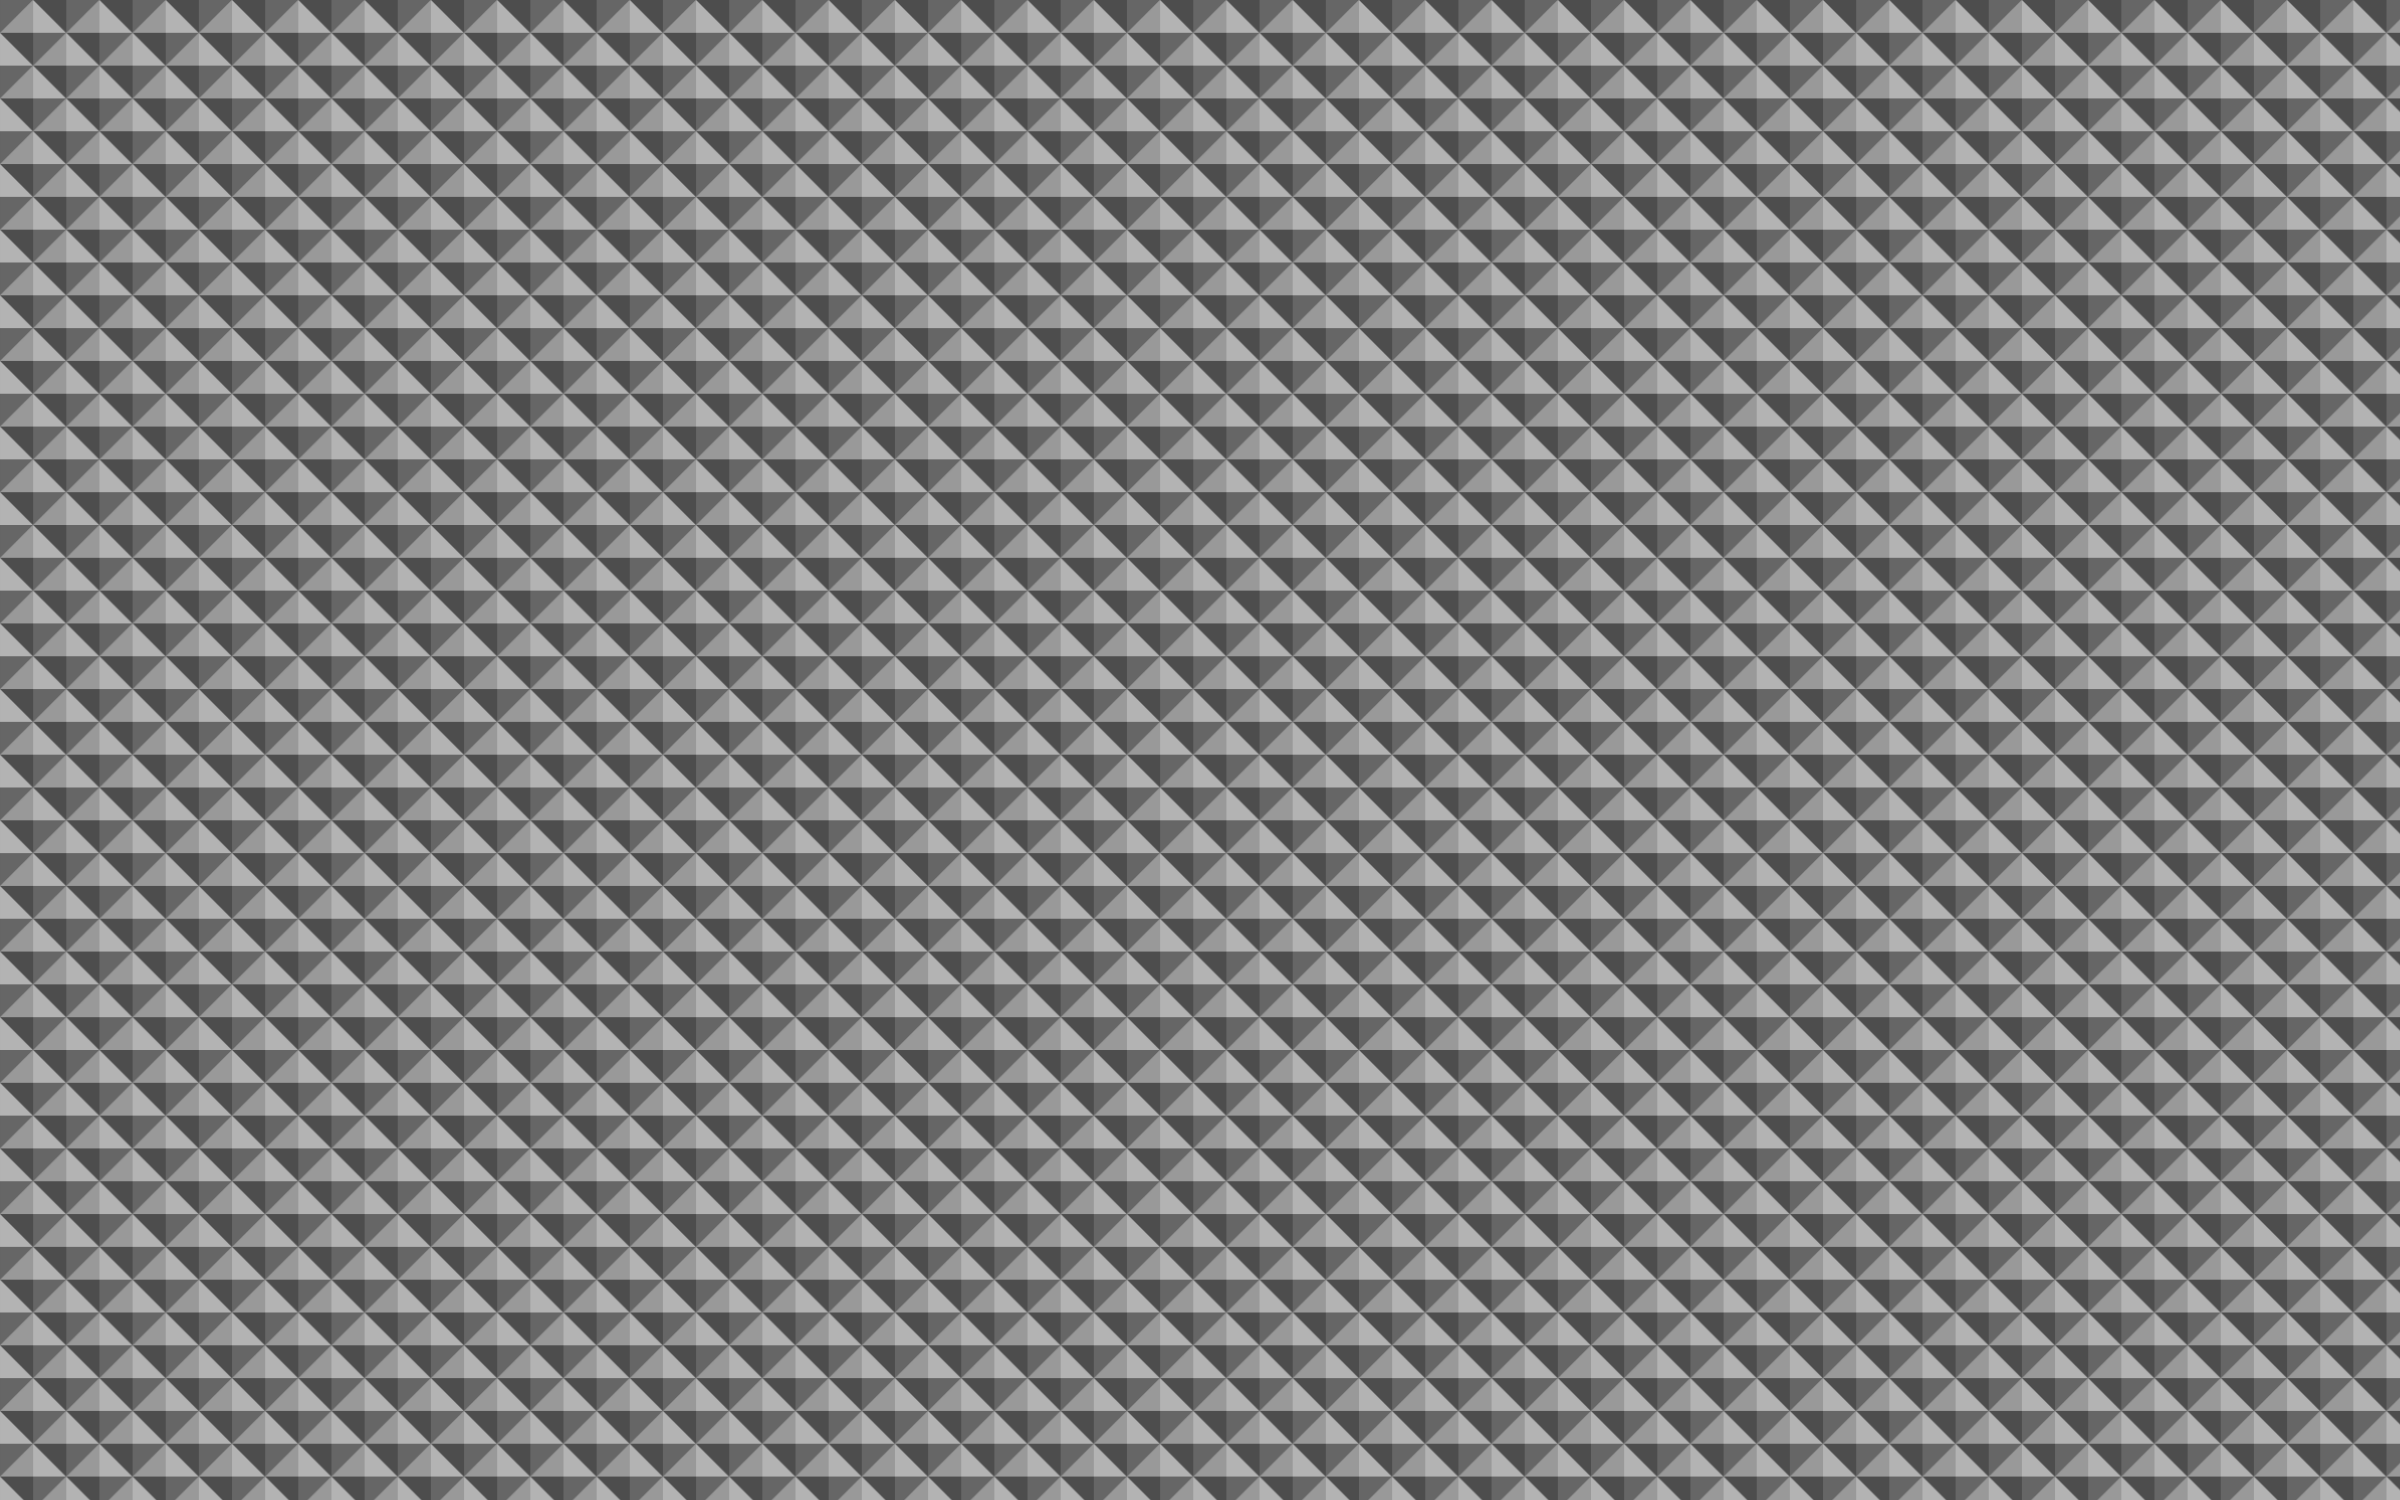 Seamless Grayscale Pyramids Pattern 3 by GDJ